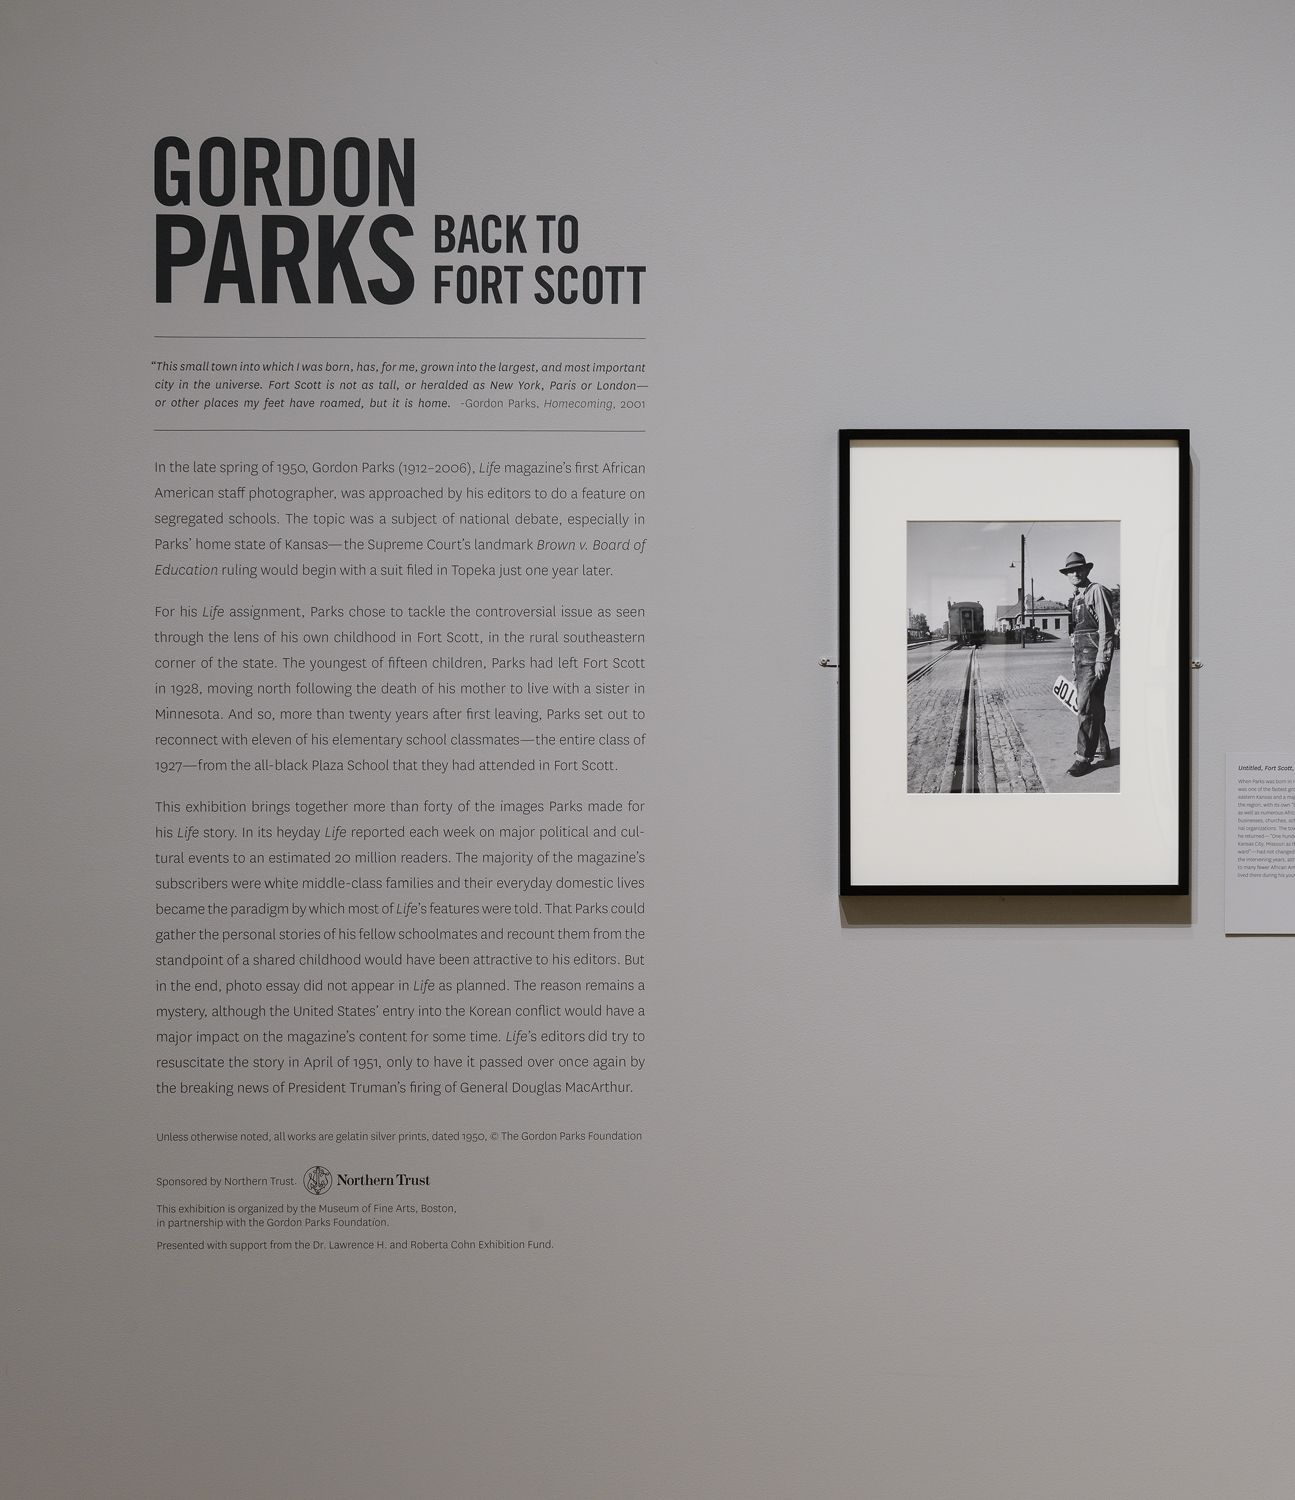 Back to Fort Scott - Exhibitions - The Gordon Parks Foundation